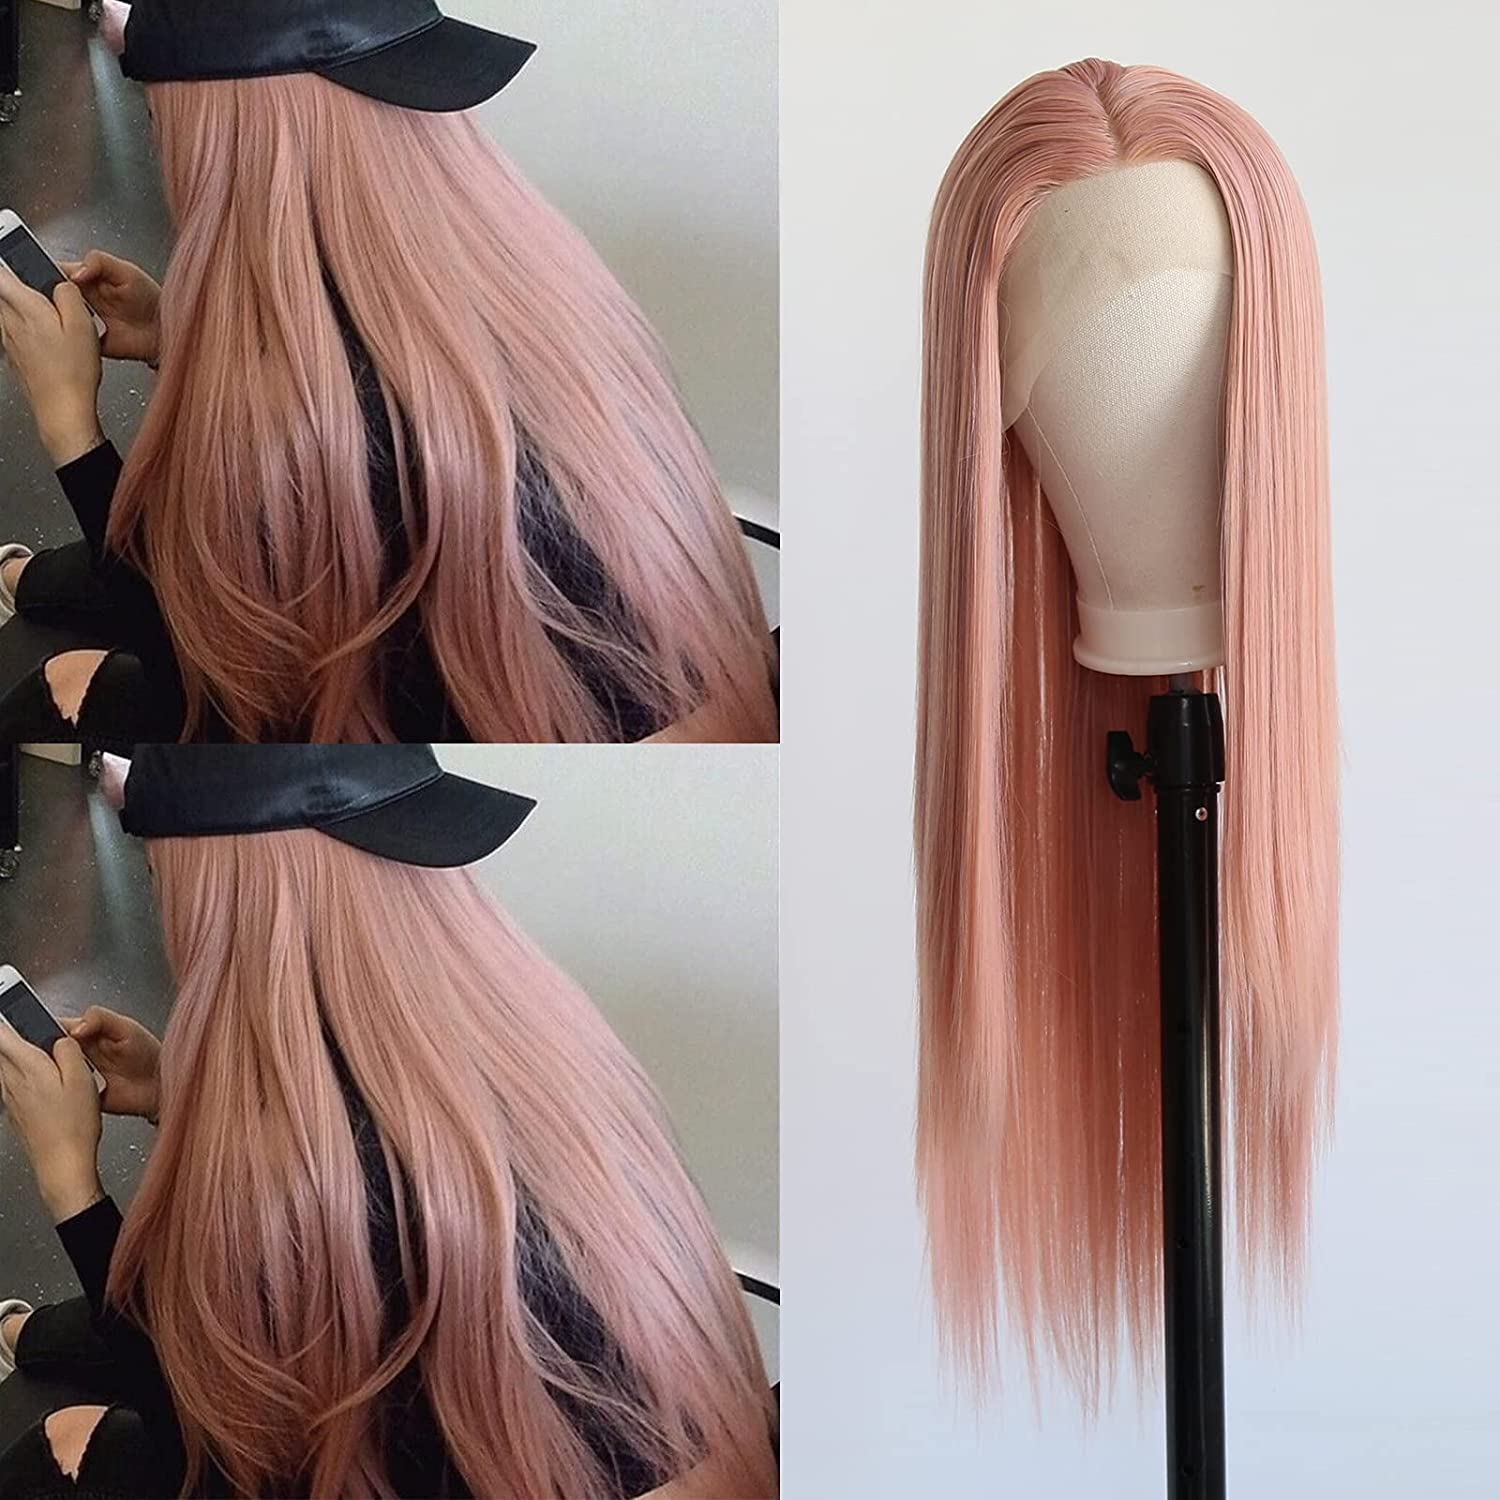 Towarm Rose Golden Wig Max 42% OFF Philadelphia Mall Synthetic Front Black Lace Women for